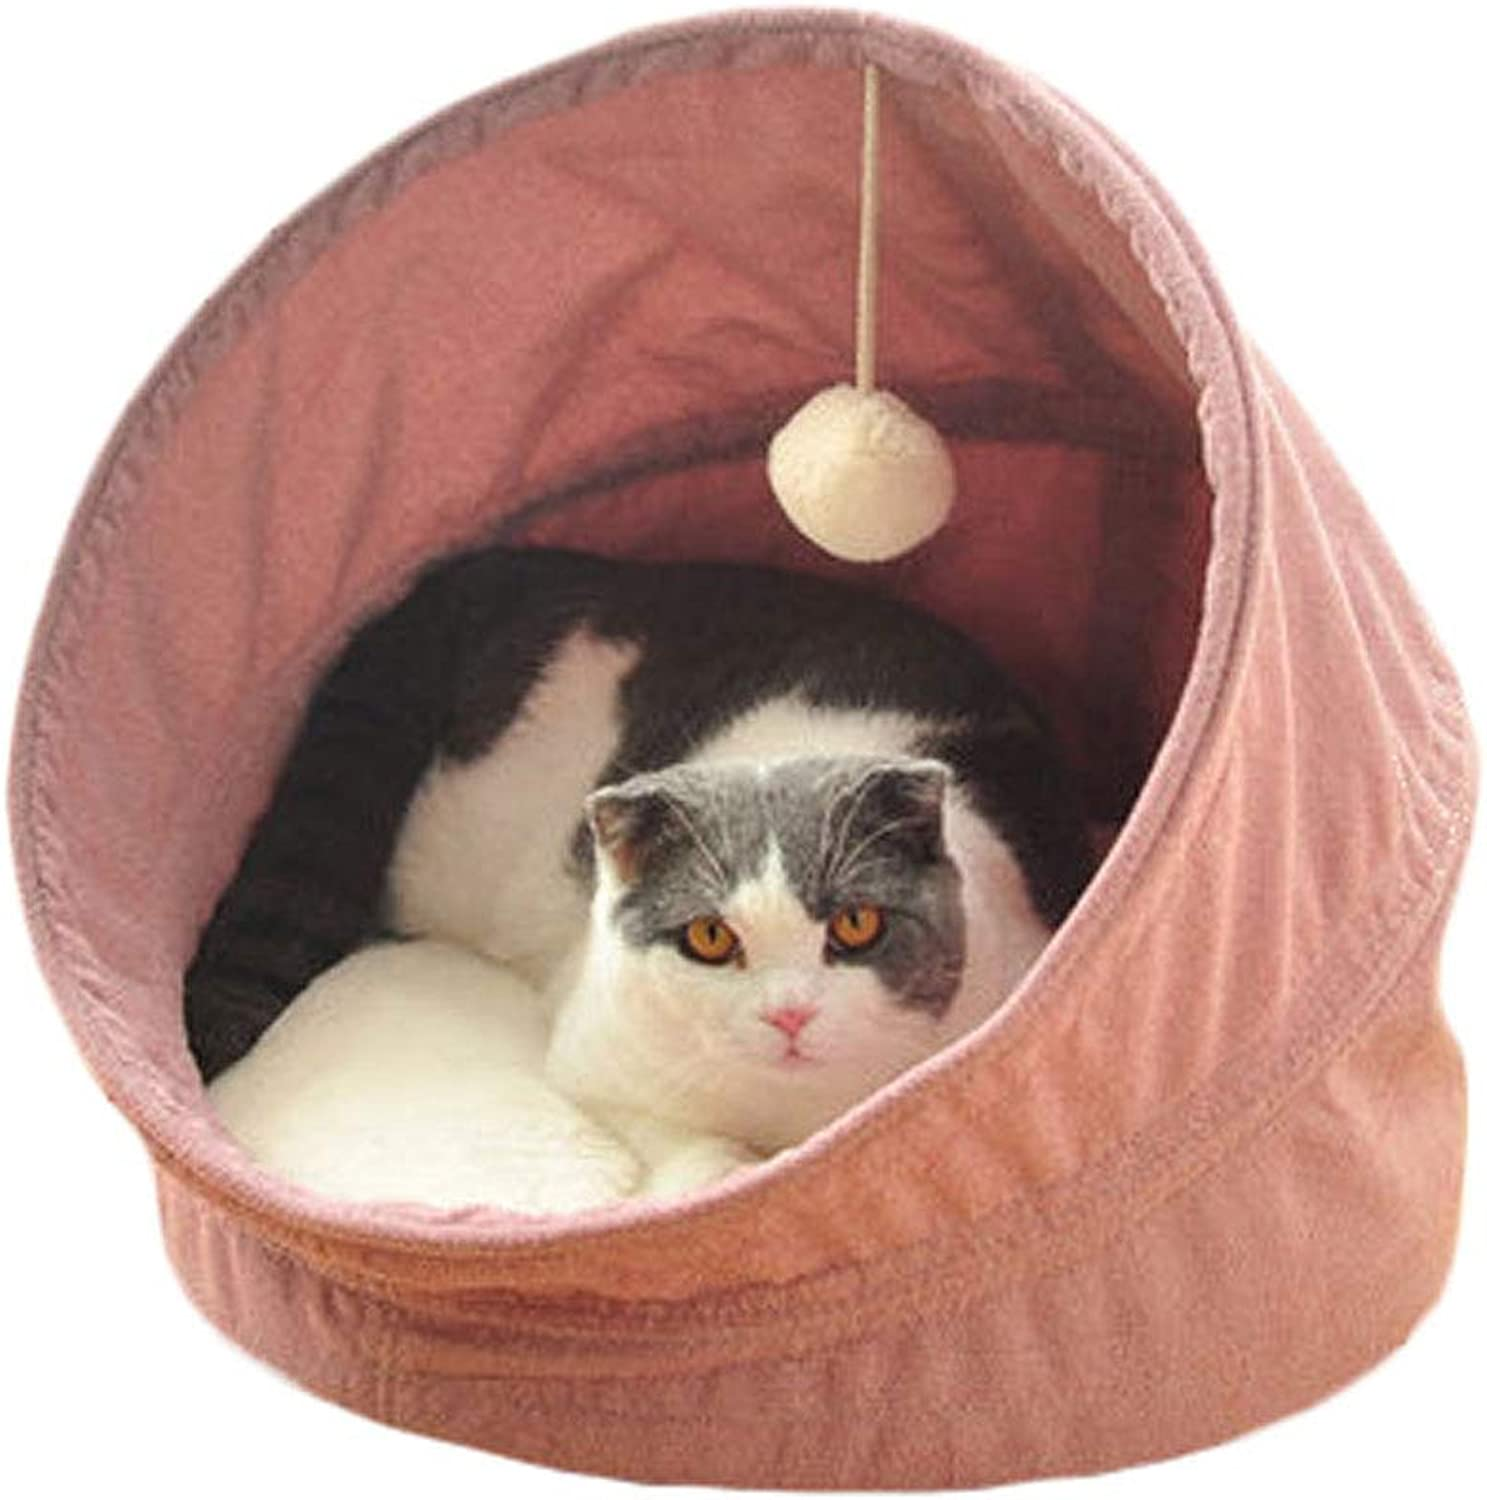 HJYCWW Cat Nest Four Seasons Universal Cat House Sleeping Bag Summer Cat Nest House Closed Cat Villa Cat House Small Dog Kennel